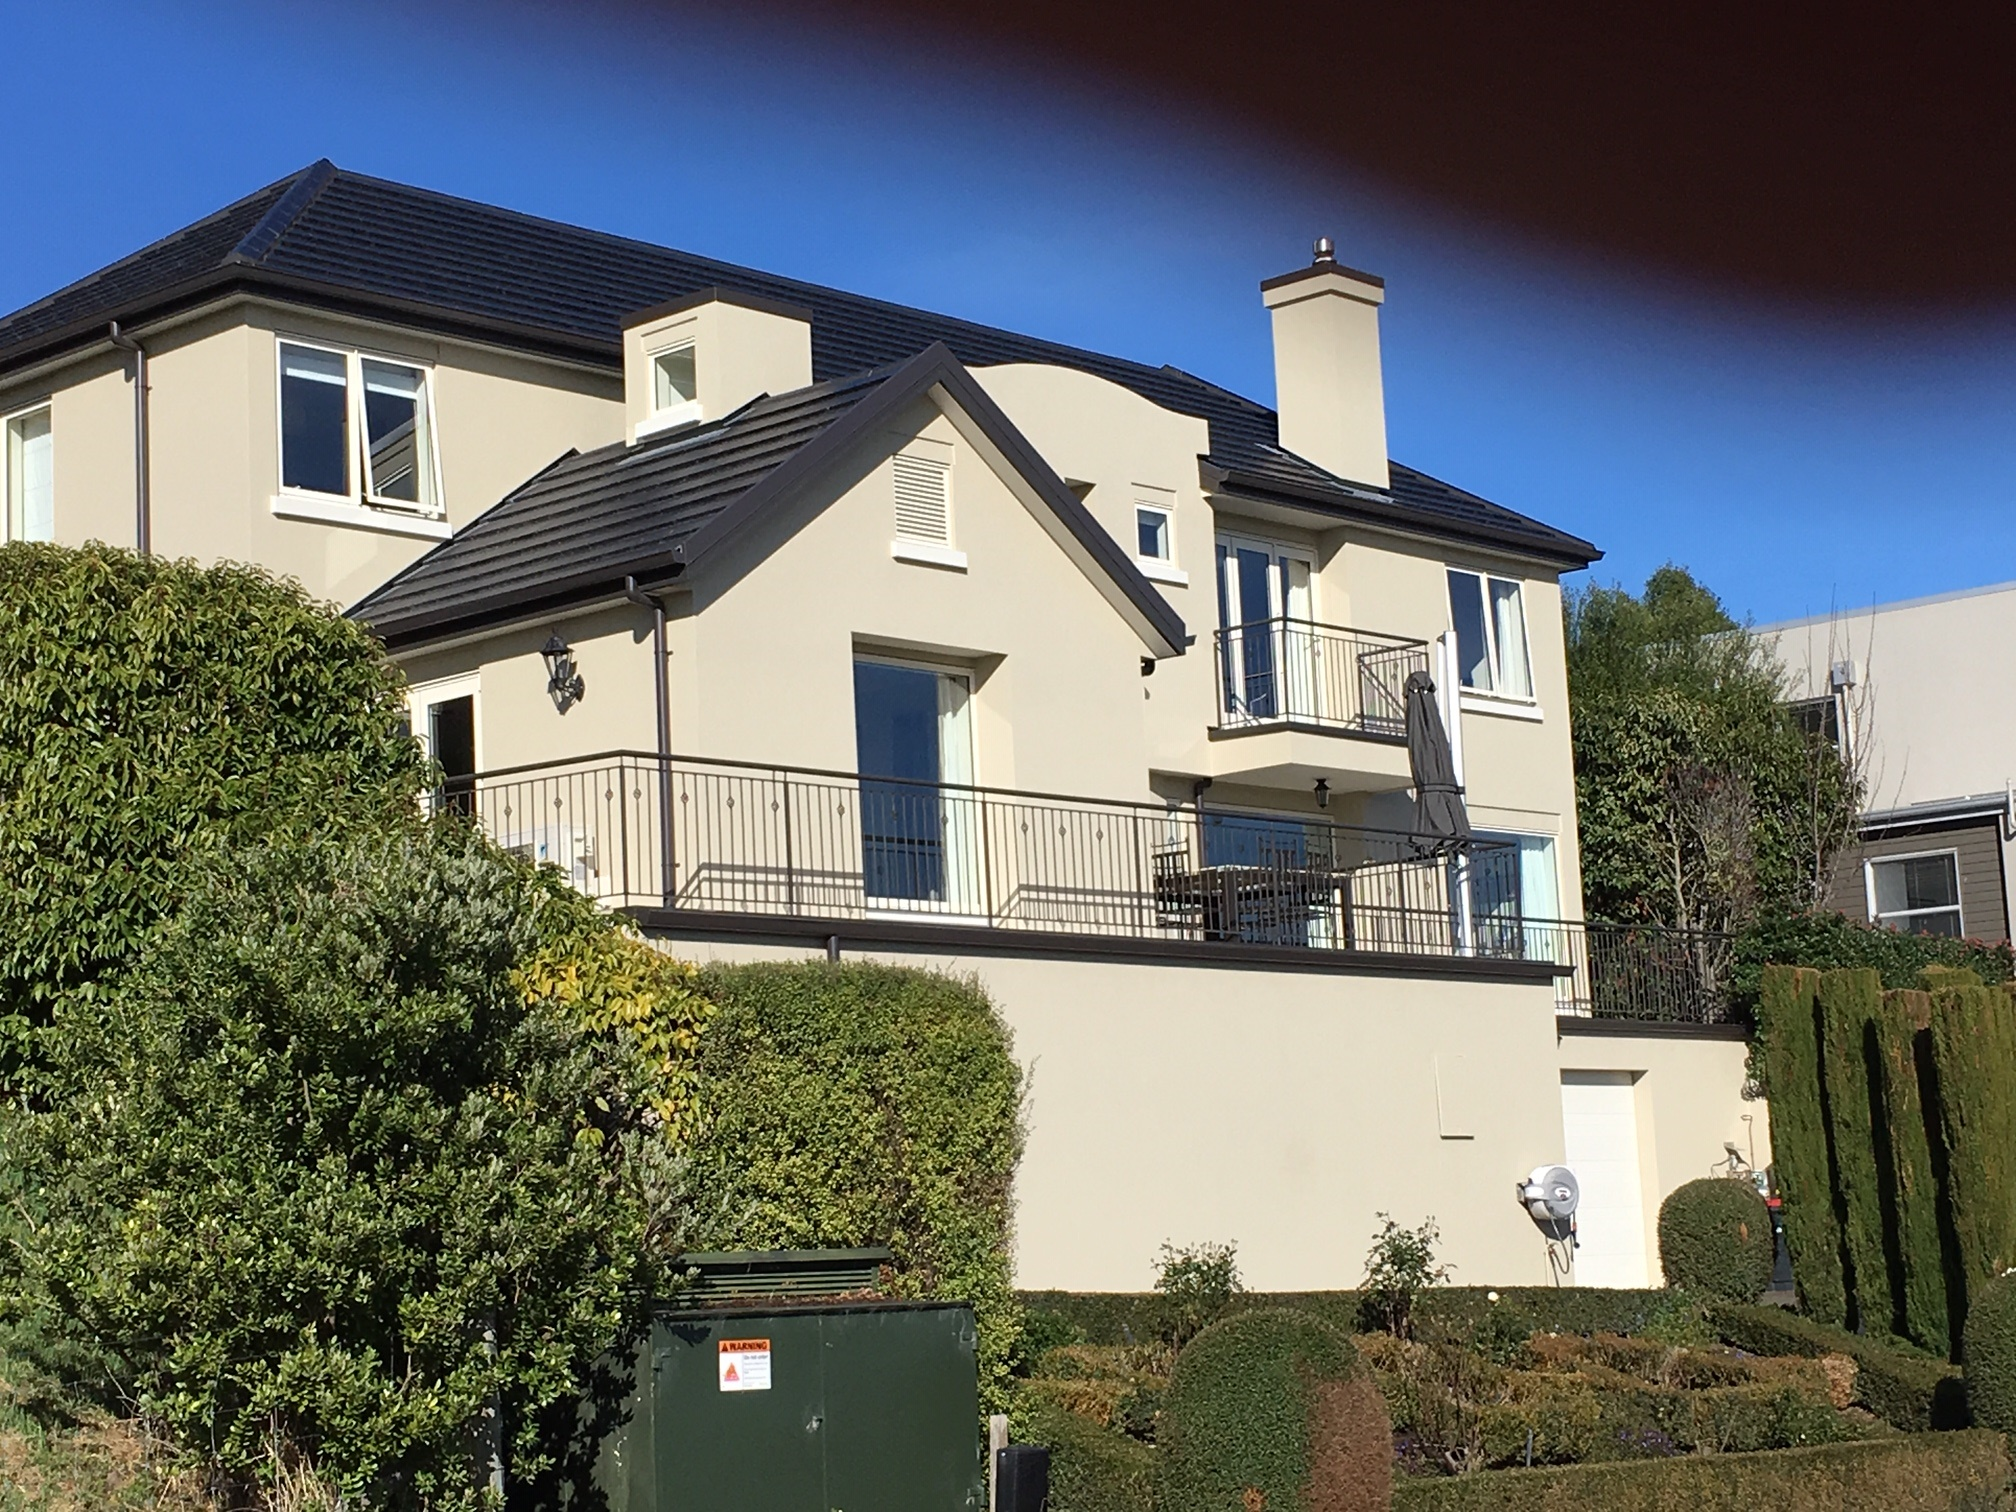 Monier roofing contractors christchurch and Canterbury